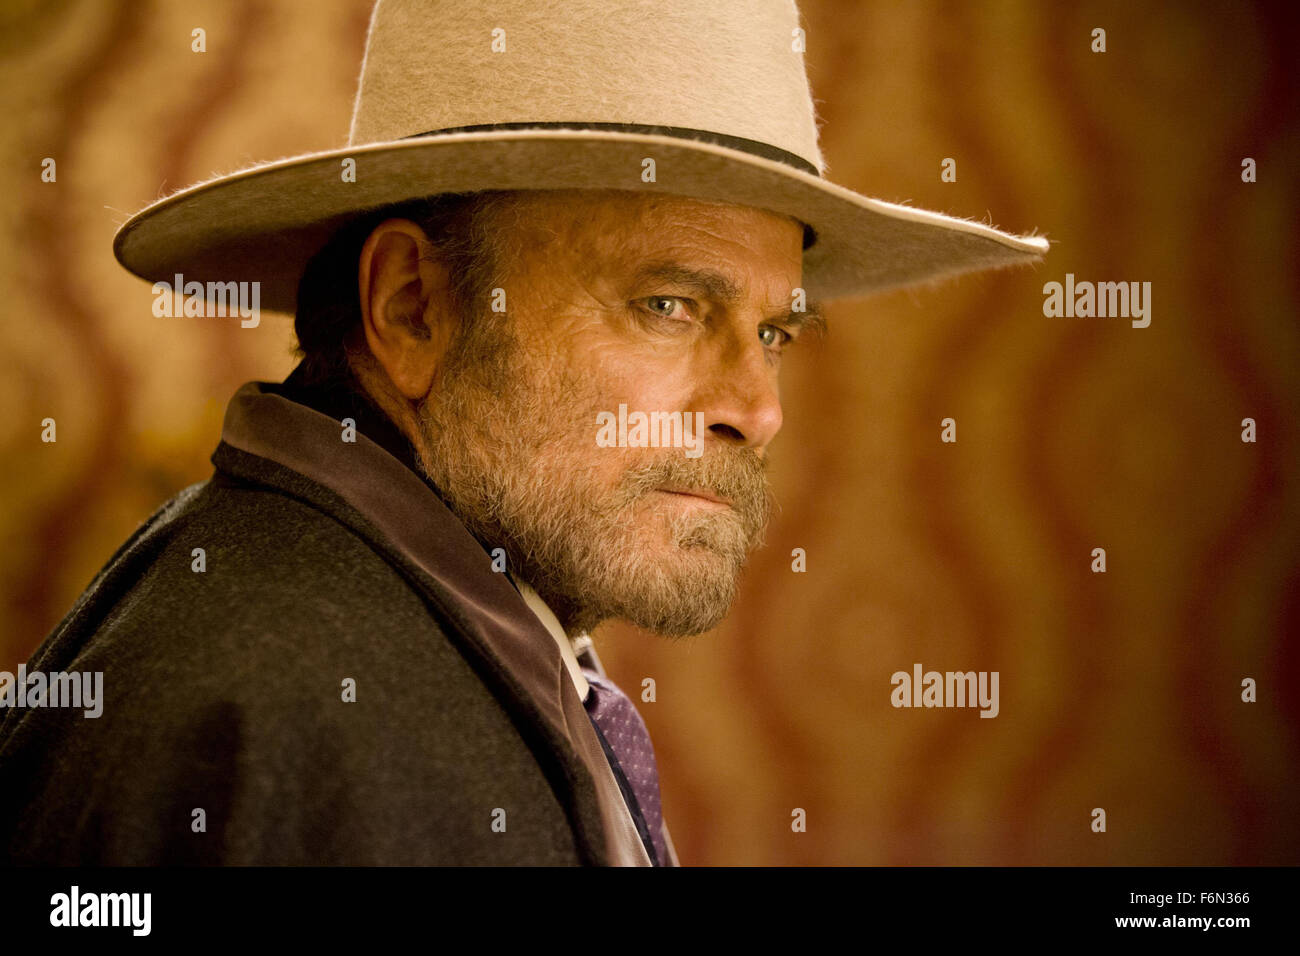 MOVIE TITLE: Django Unchained STUDIO: Columbia Pictures DIRECTOR: Quentin Tarantino PLOT: With the help of his mentor, - Stock Image